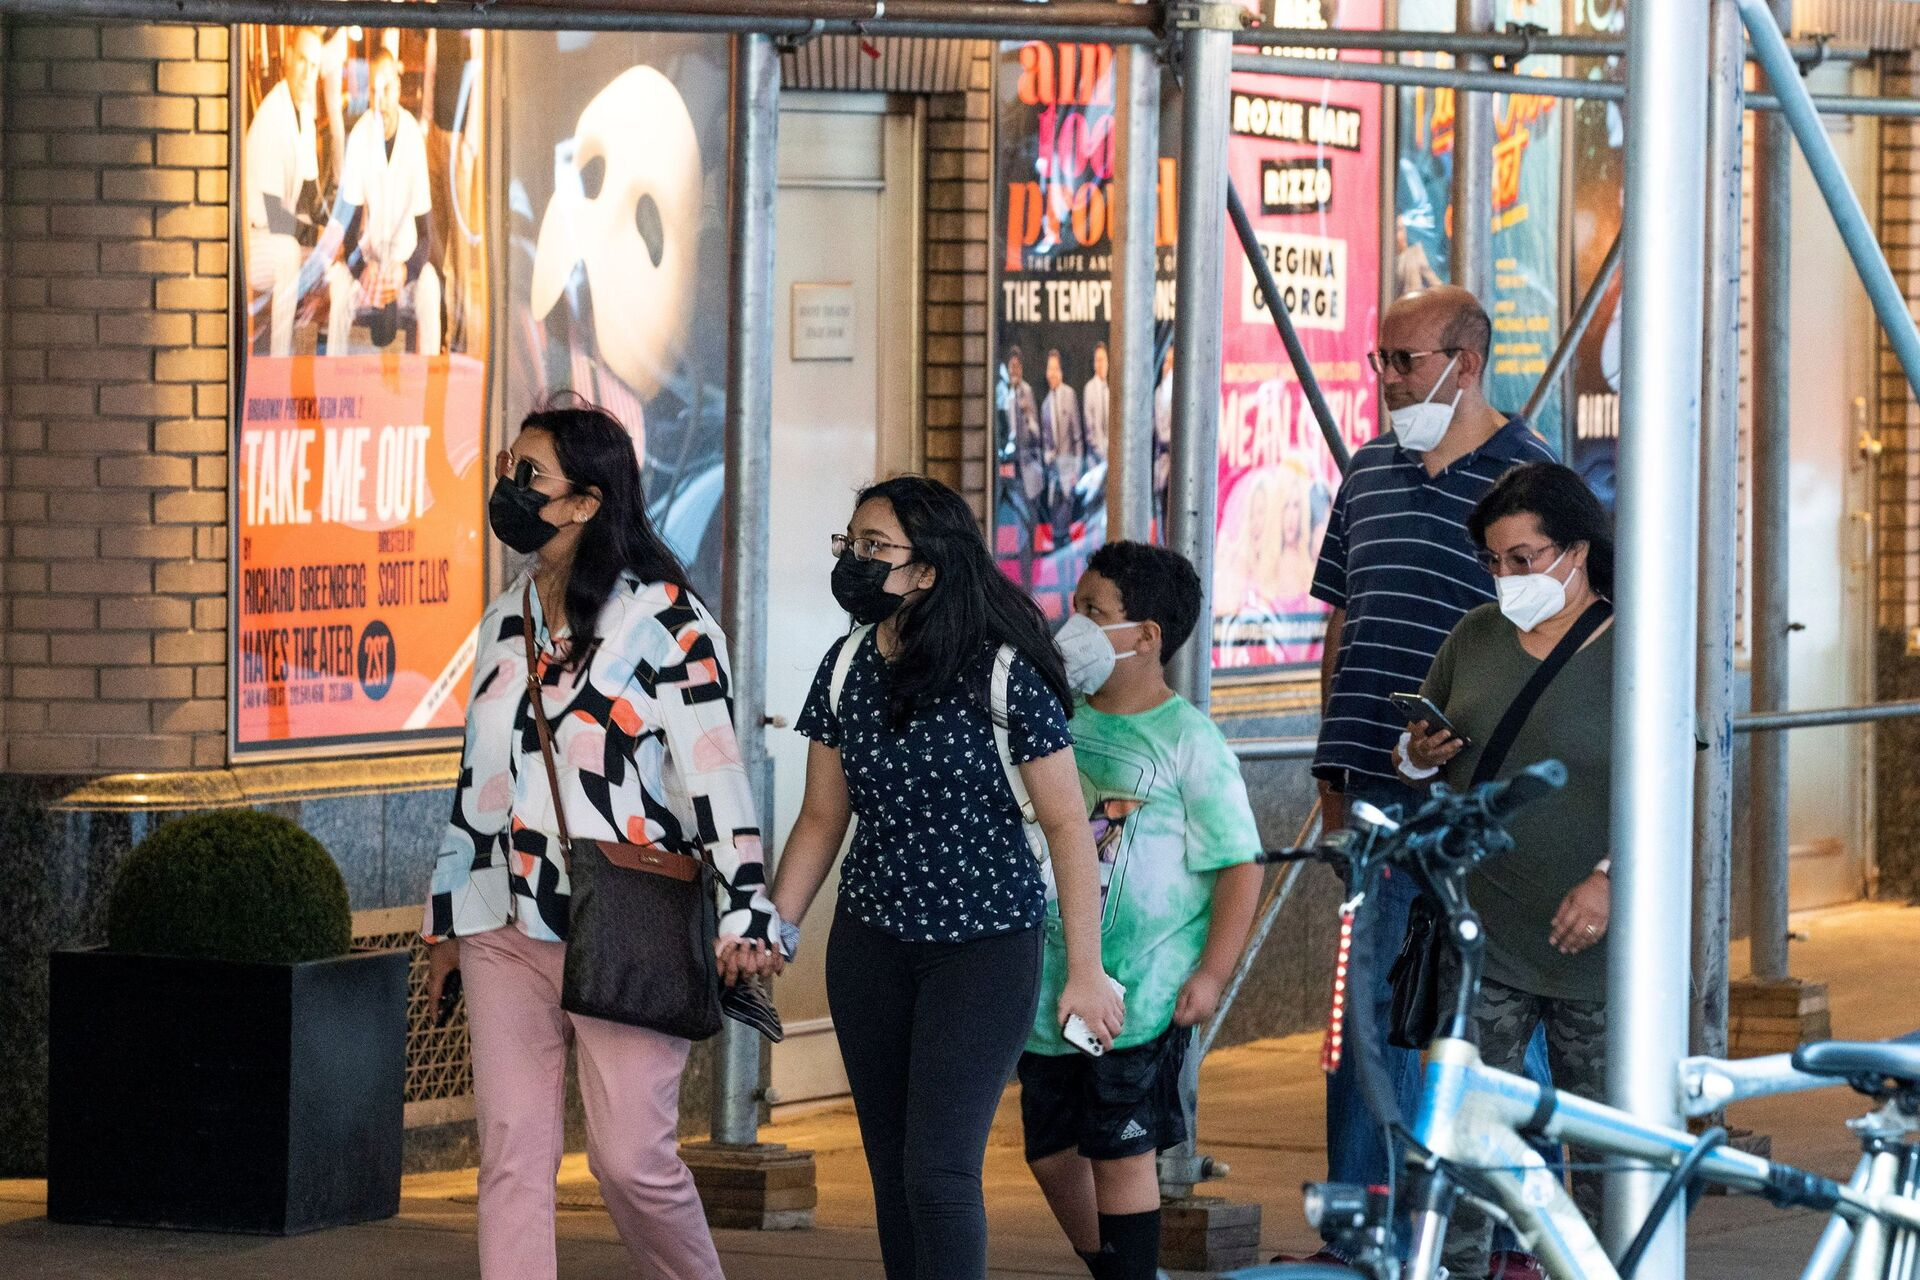 People walk near posters of theatre shows while they wear masks to prevent against the spread of the coronavirus disease (COVID-19), as the highly transmissible Delta variant has led to a surge in infections, in New York City, U.S - Sputnik International, 1920, 07.09.2021